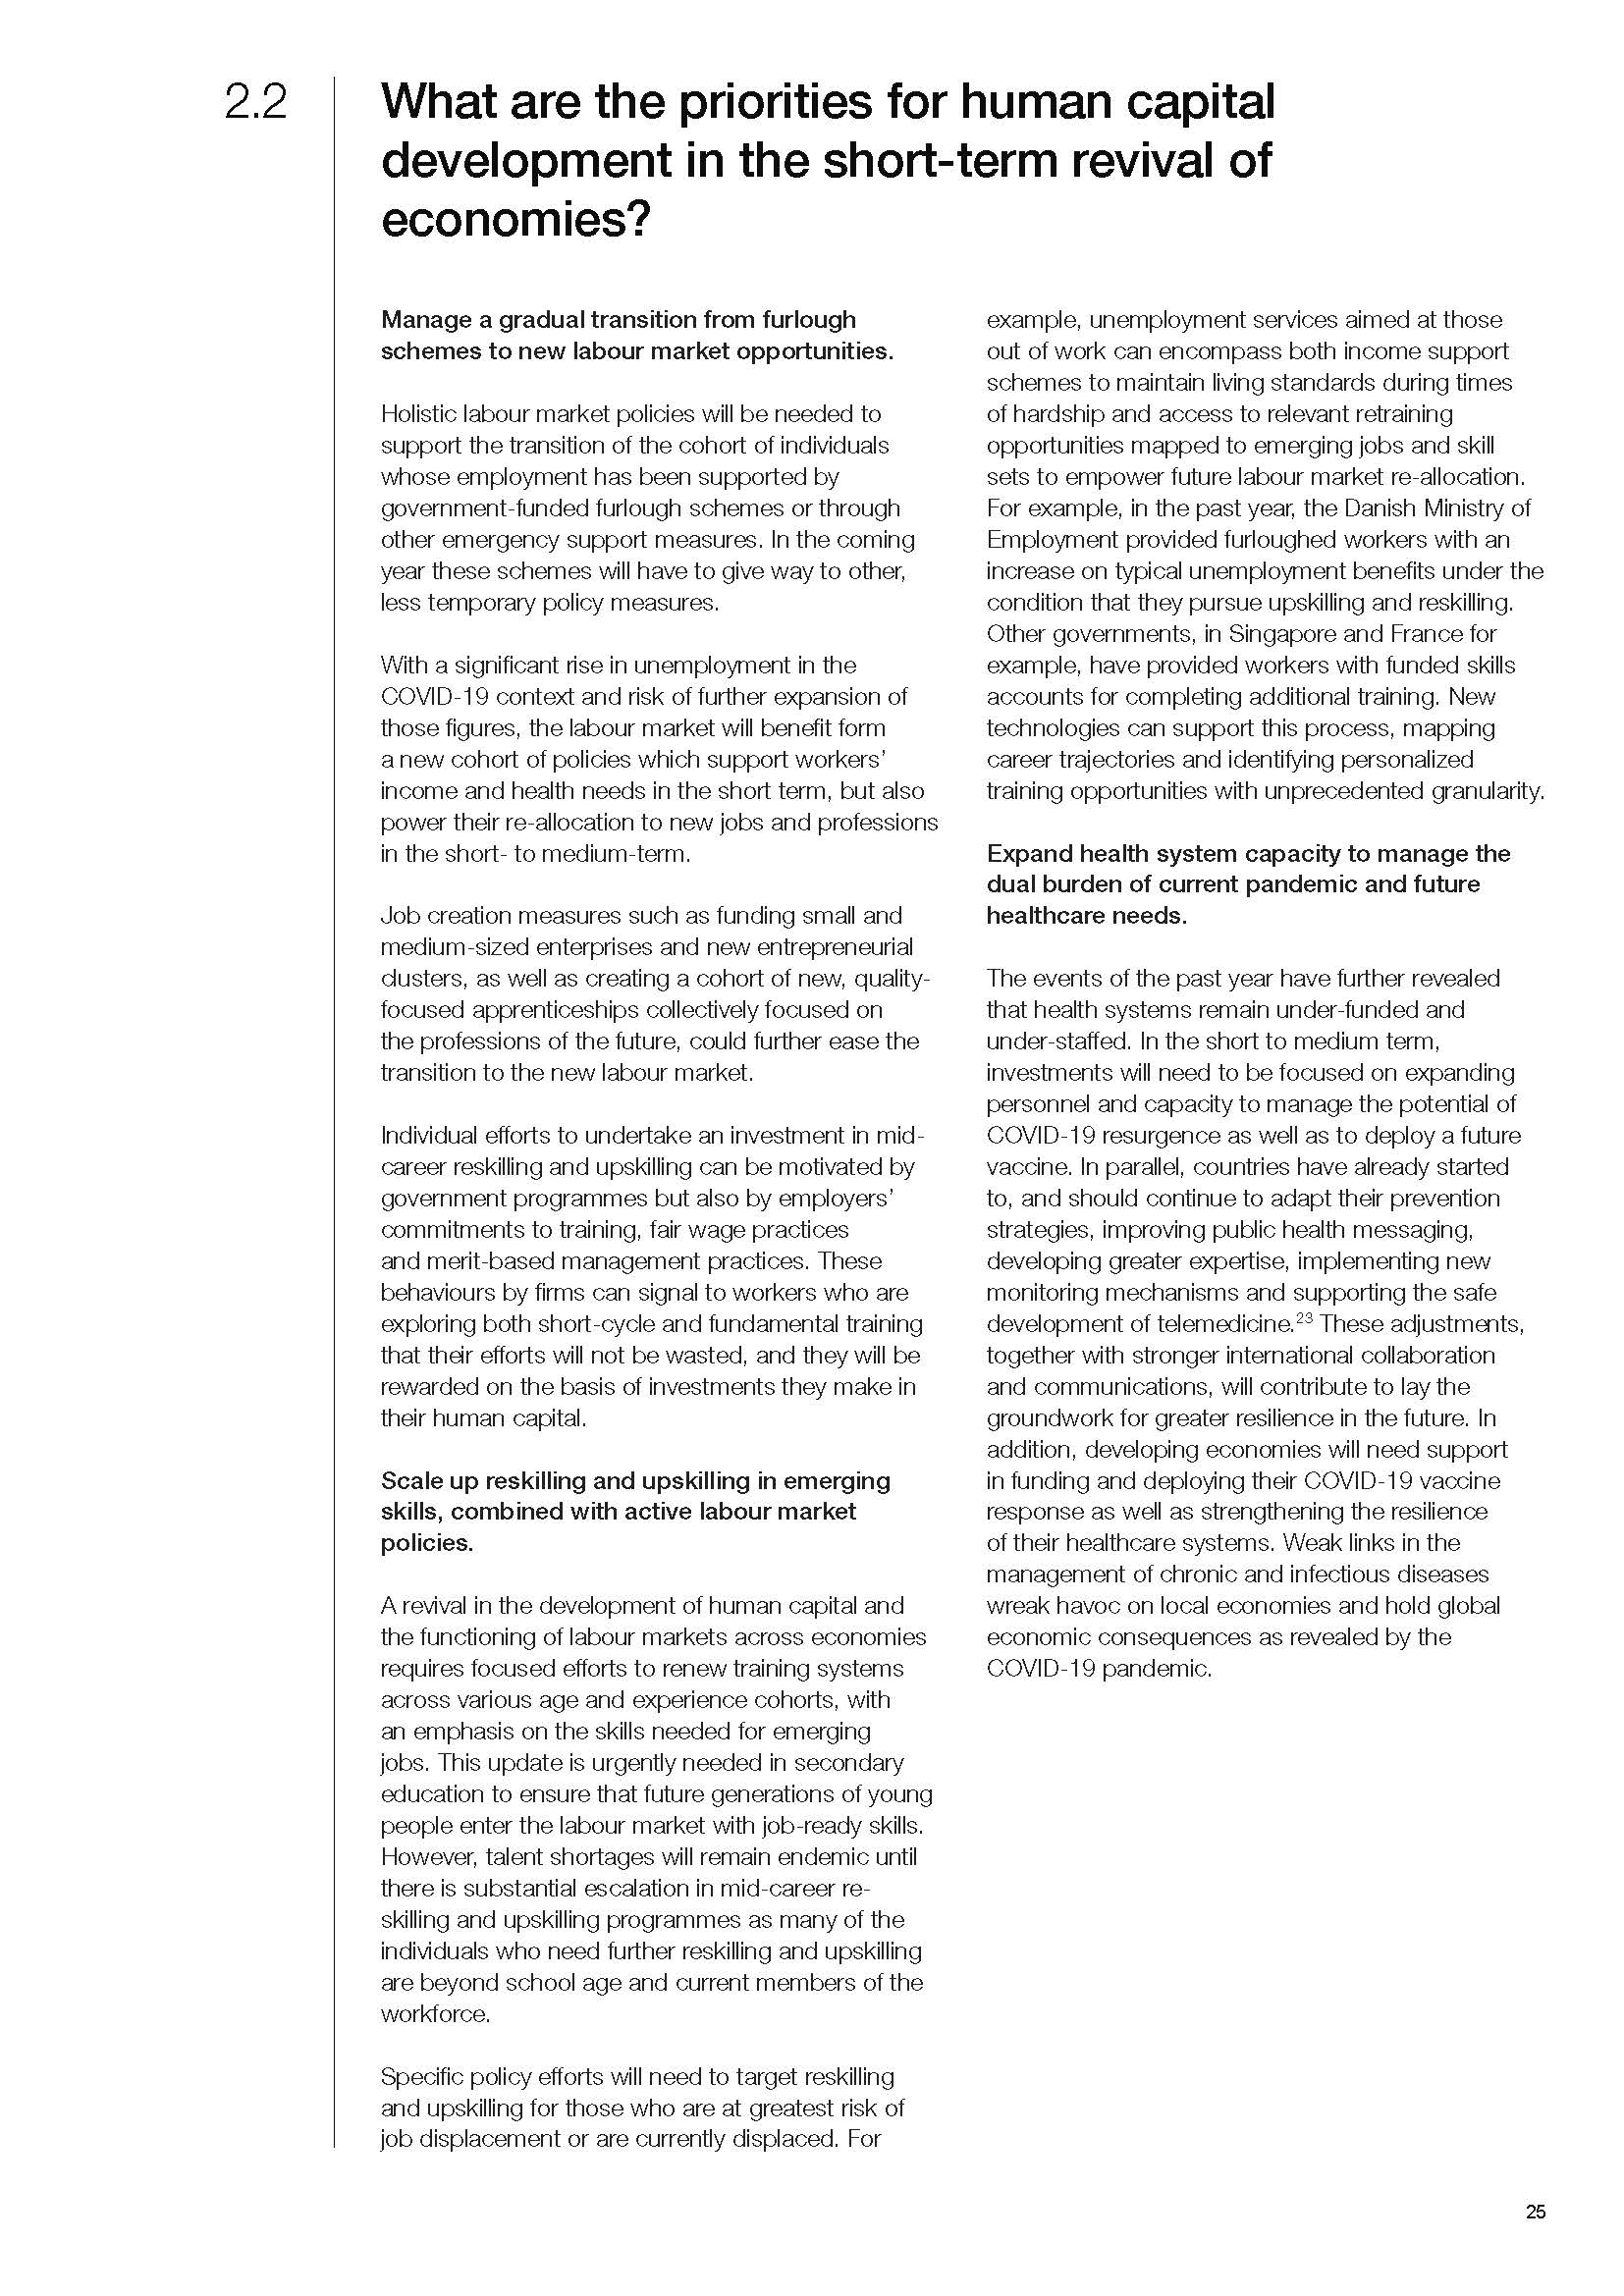 Global Competitiveness Report Special Edition 2020:How Countries are Performing on the Road to Recovery - World Economic Forum_页面_25.jpg